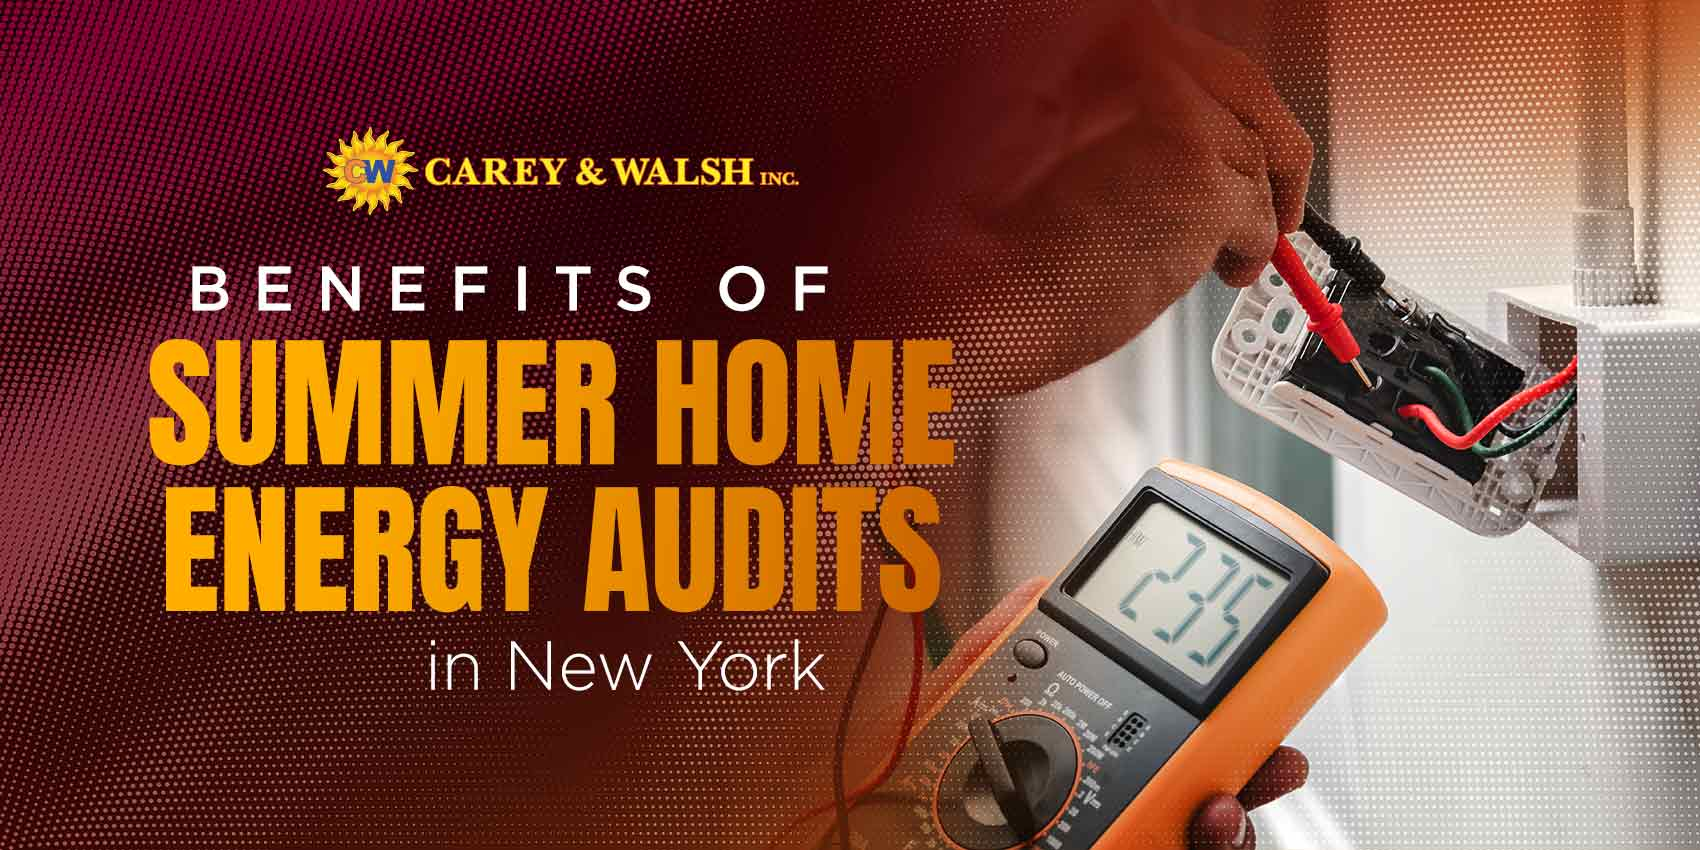 Benefits of Summer Home Energy Audits in New York